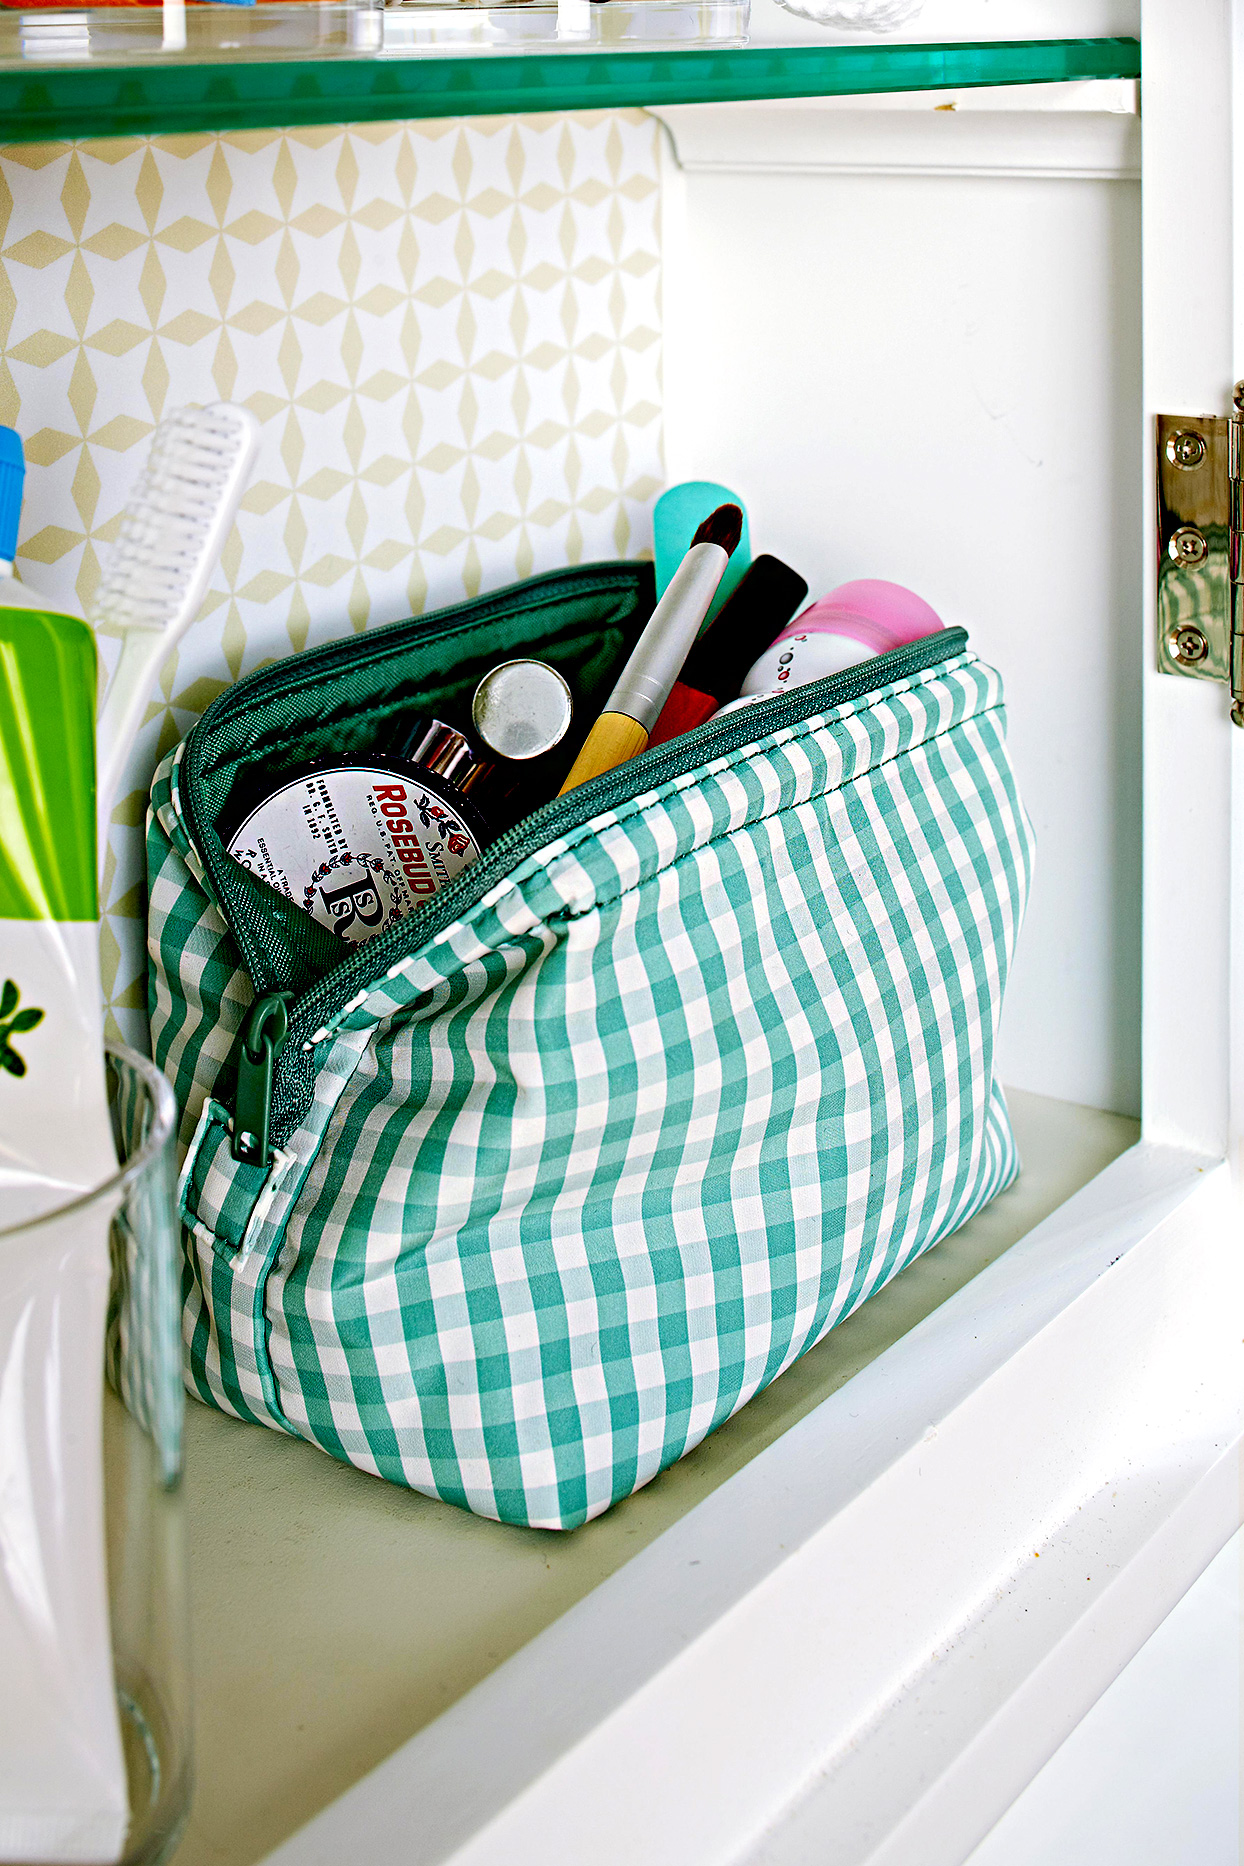 Makeup bag in cupboard